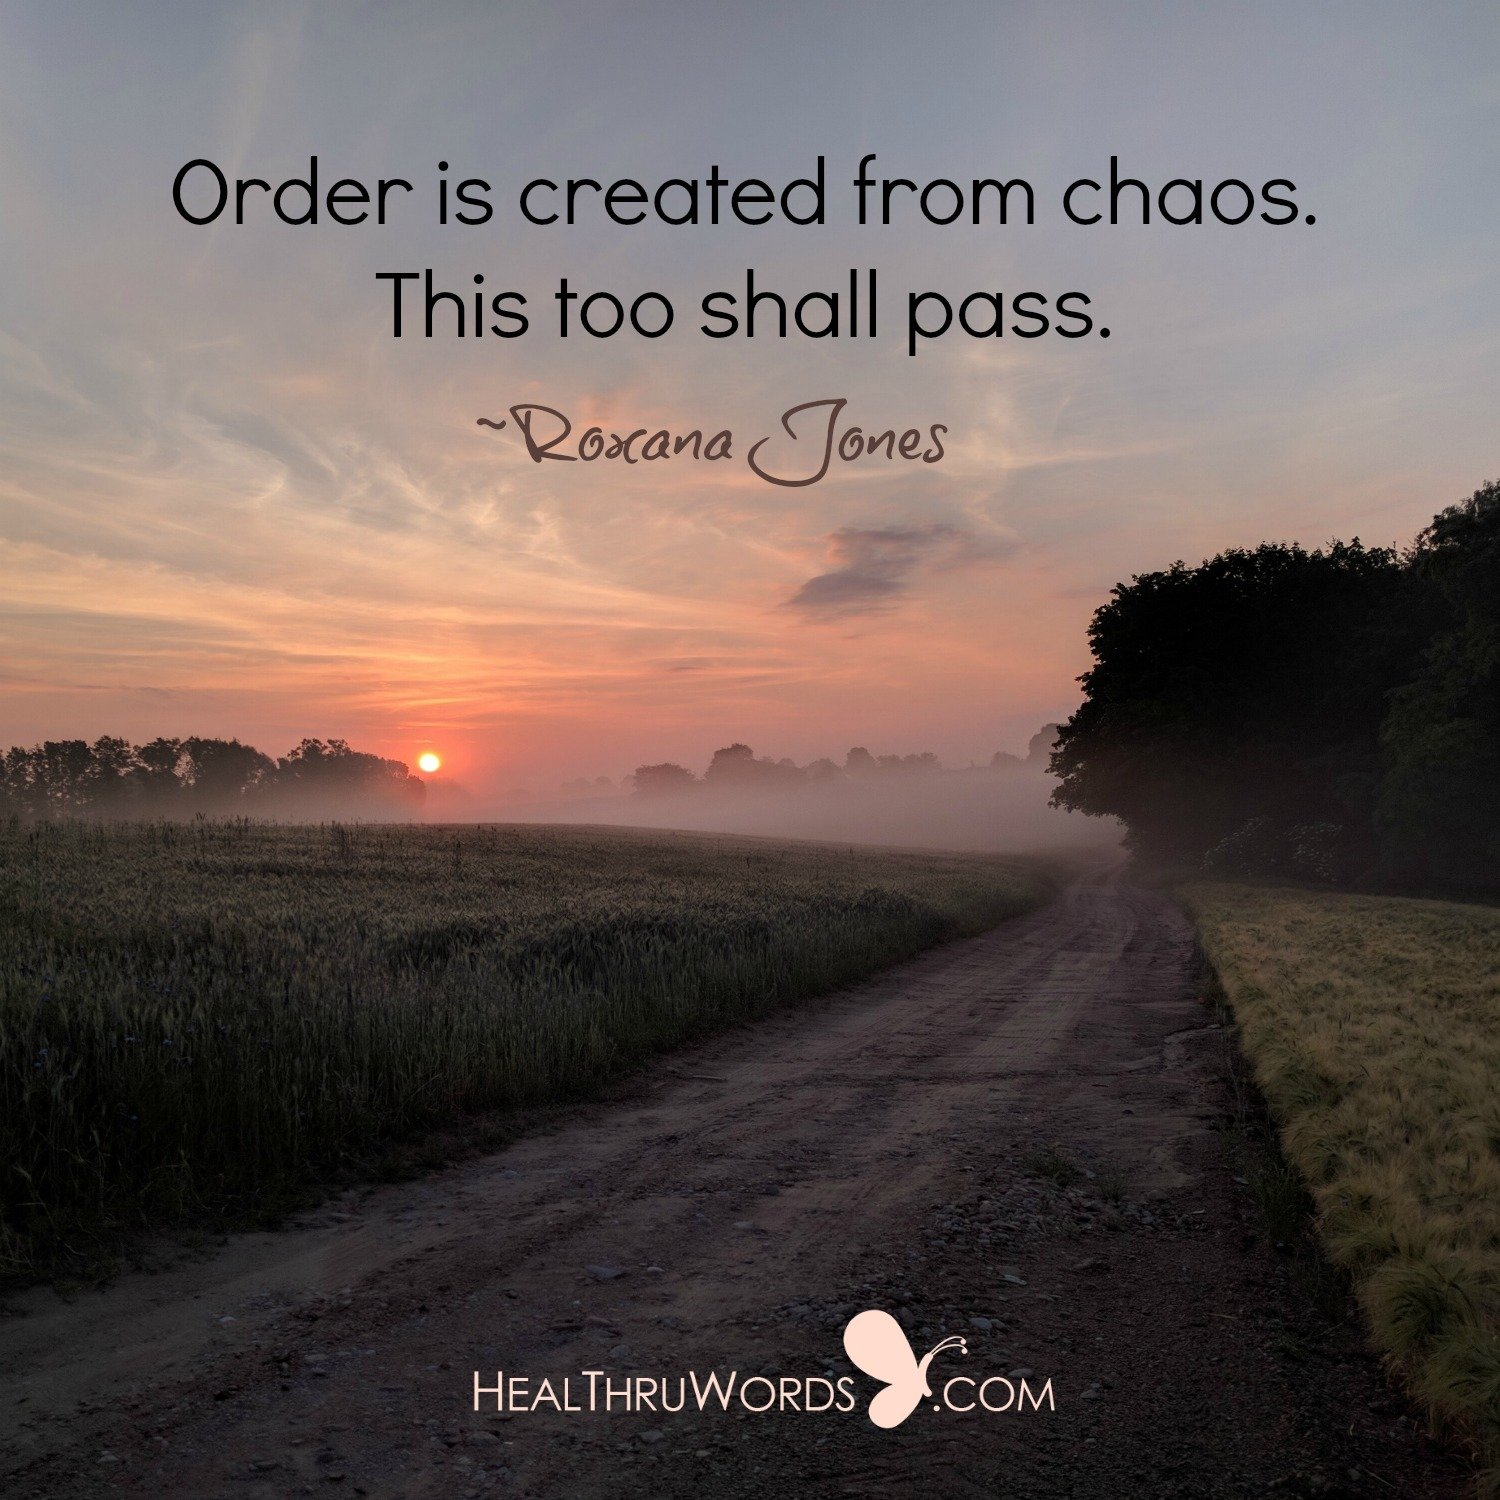 Inspirational Image: This Too Shall Pass